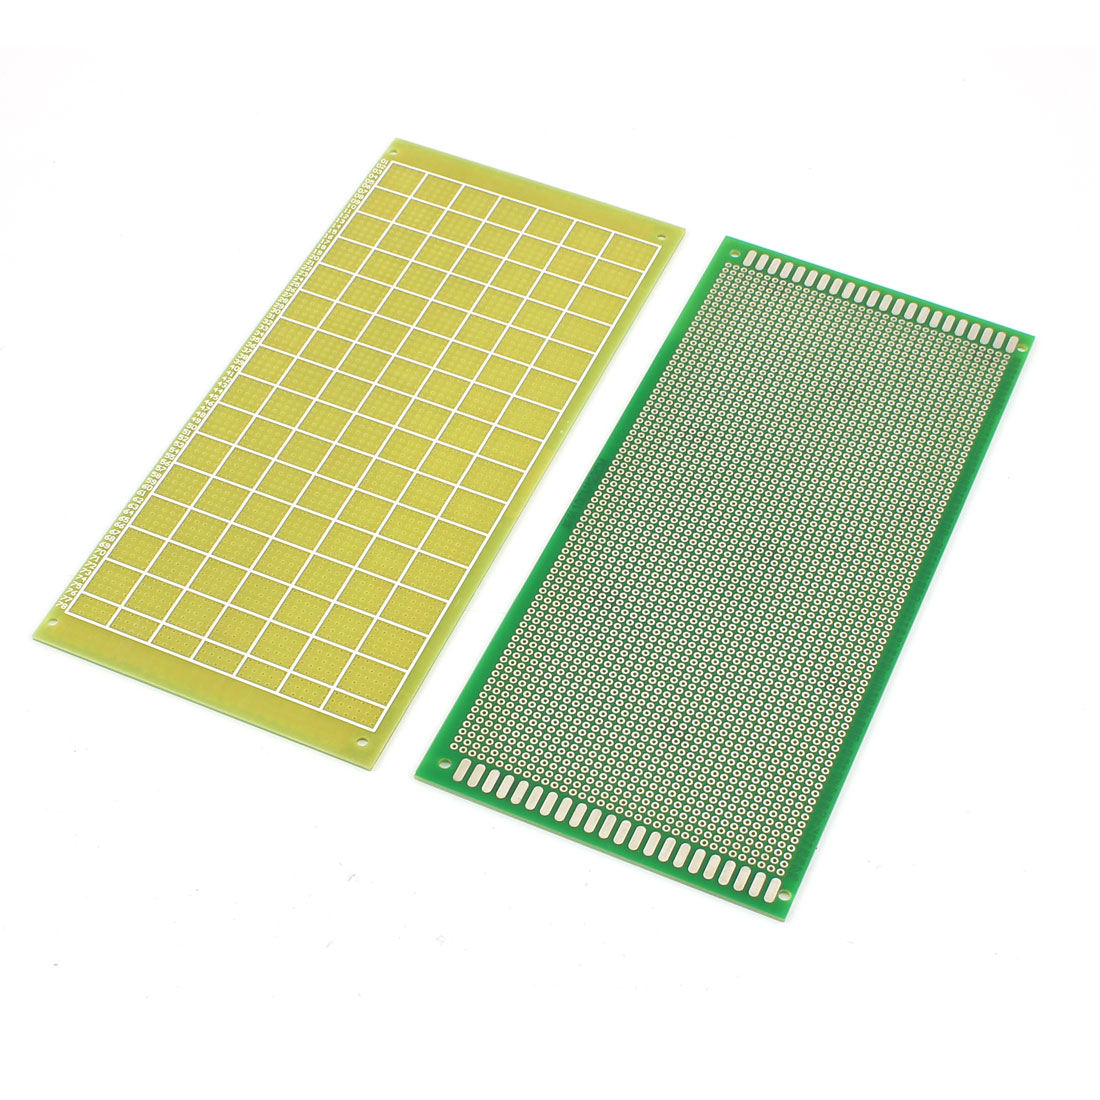 2Pcs 10cm x 22cm Electronic DIY Prototype Paper Single Side PCB Universal Board